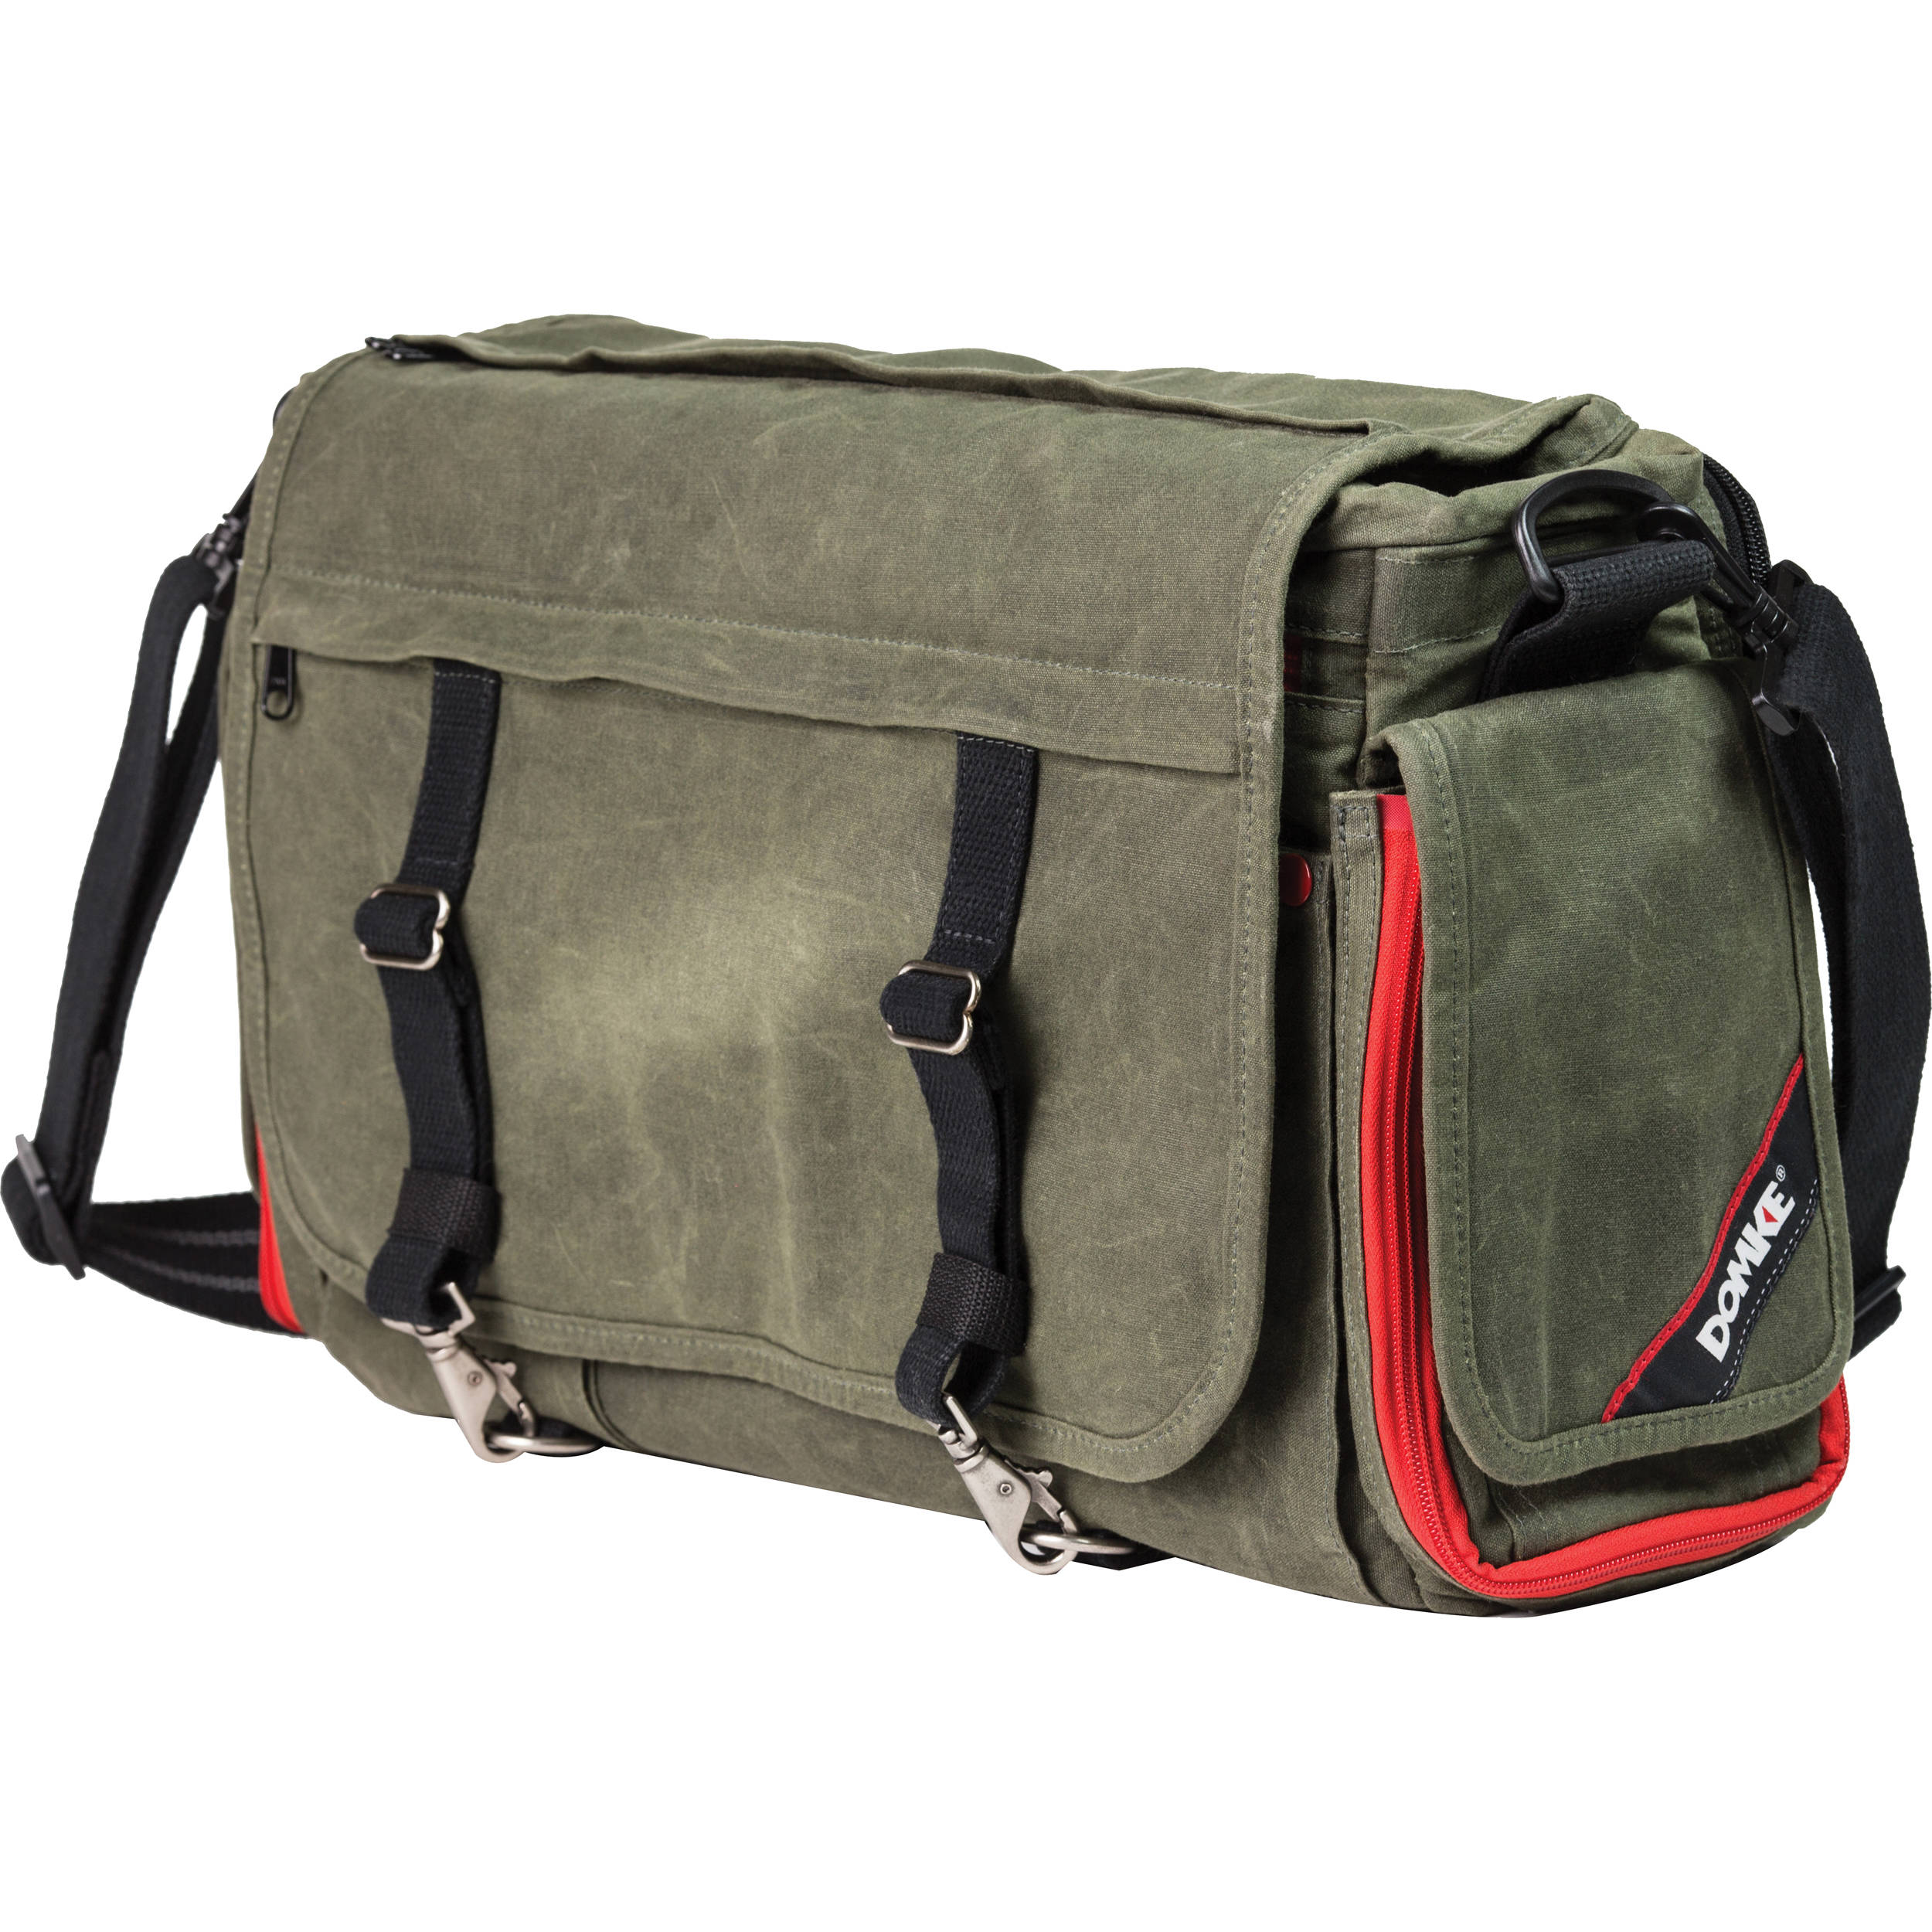 Domke Next Generation Metro Messenger Camera Bag Military Ruggedwear